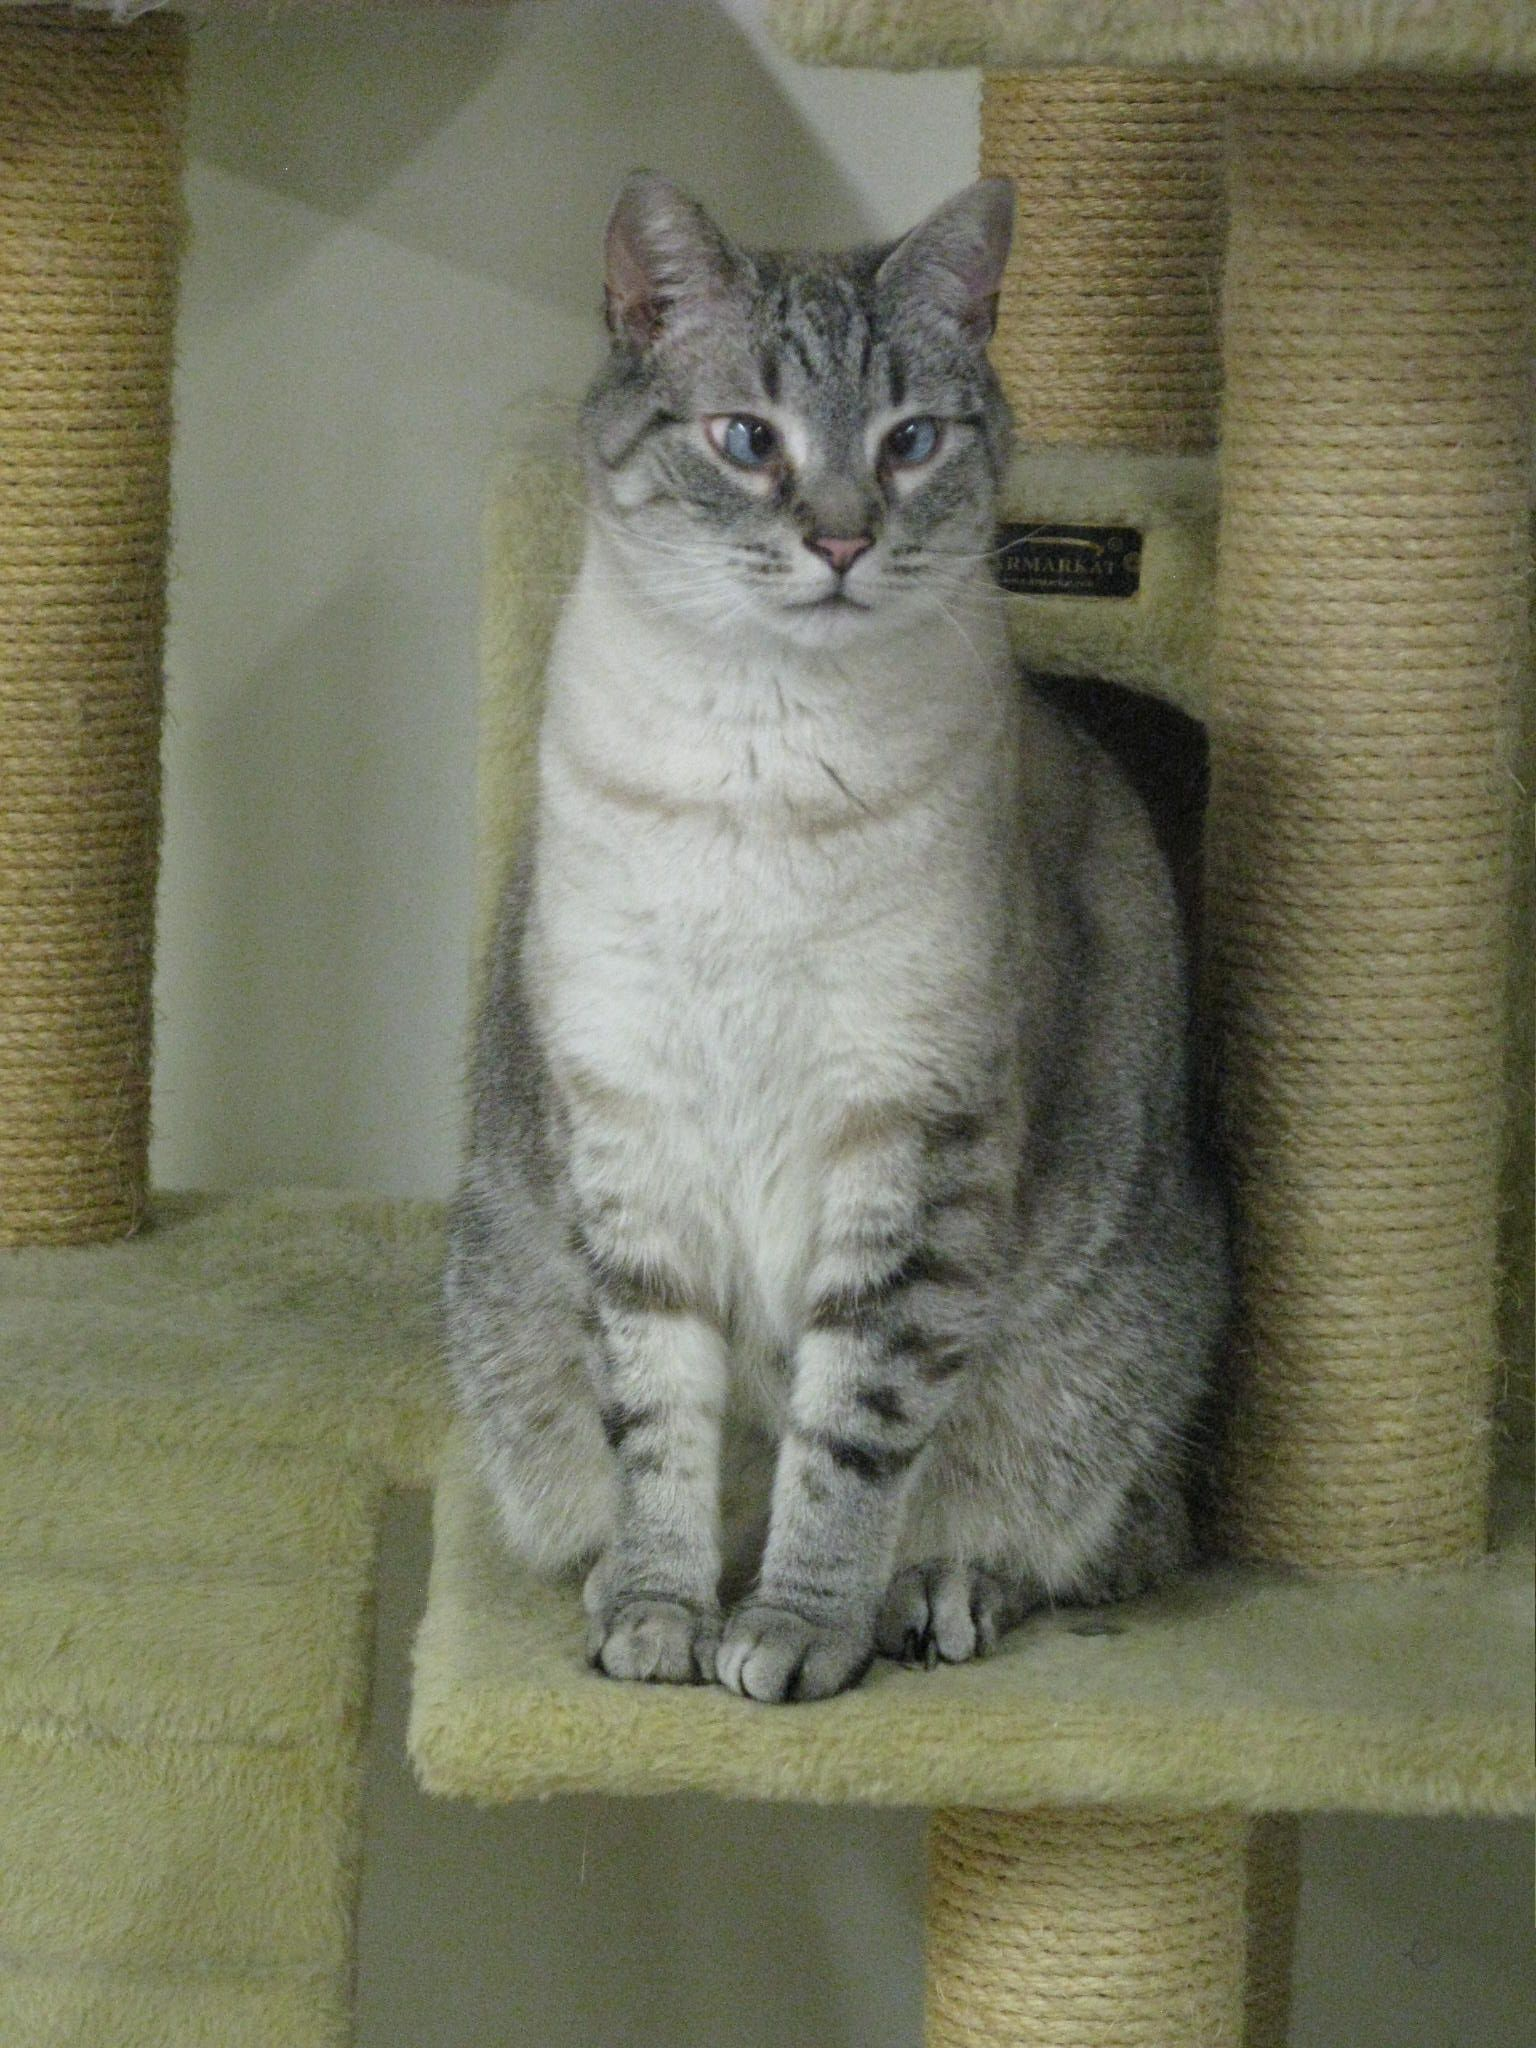 The LAPS cat of the week is Spunky, a siamese mix adult